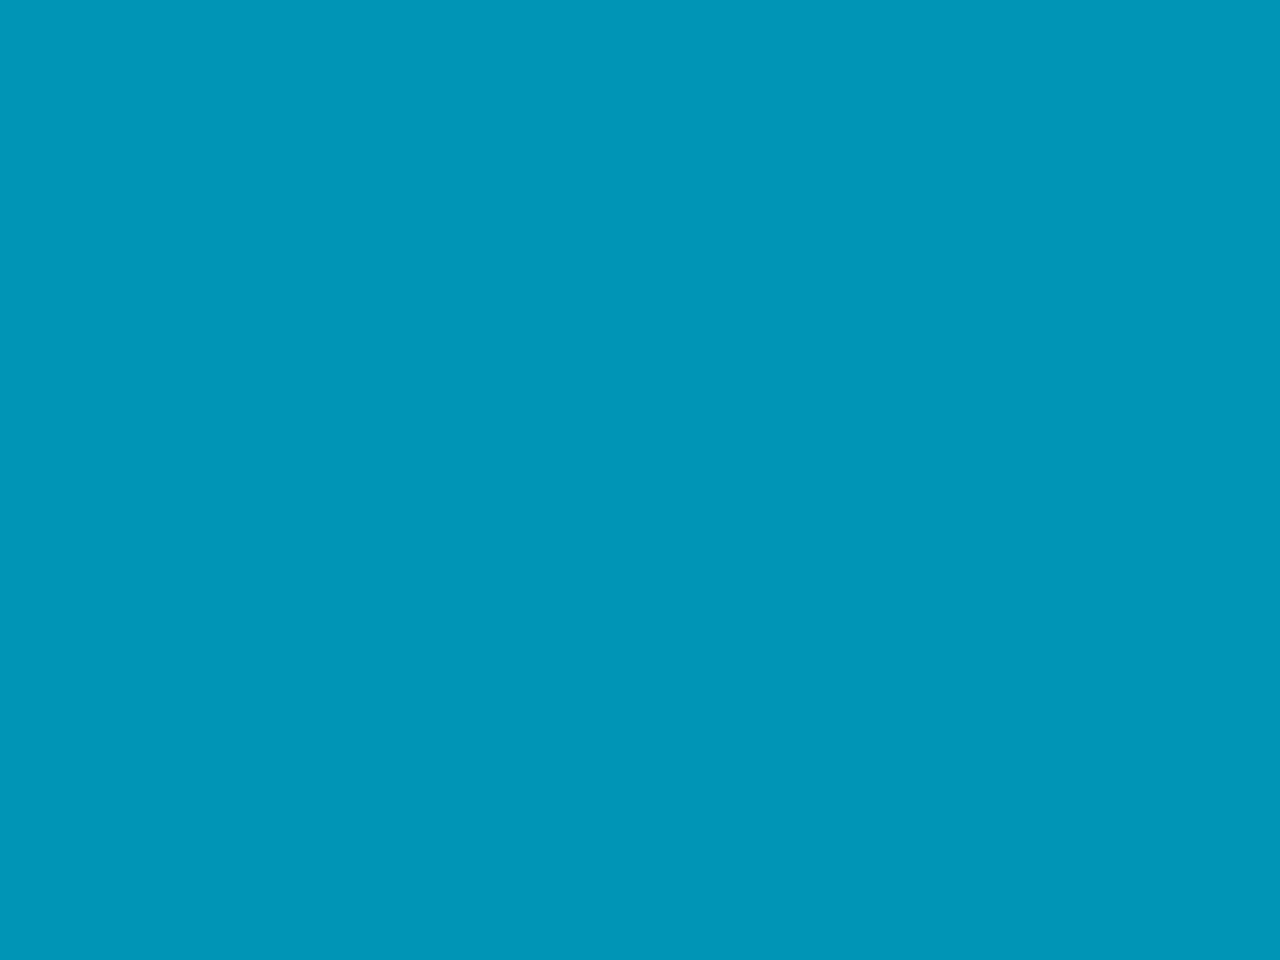 1280x960 Bondi Blue Solid Color Background